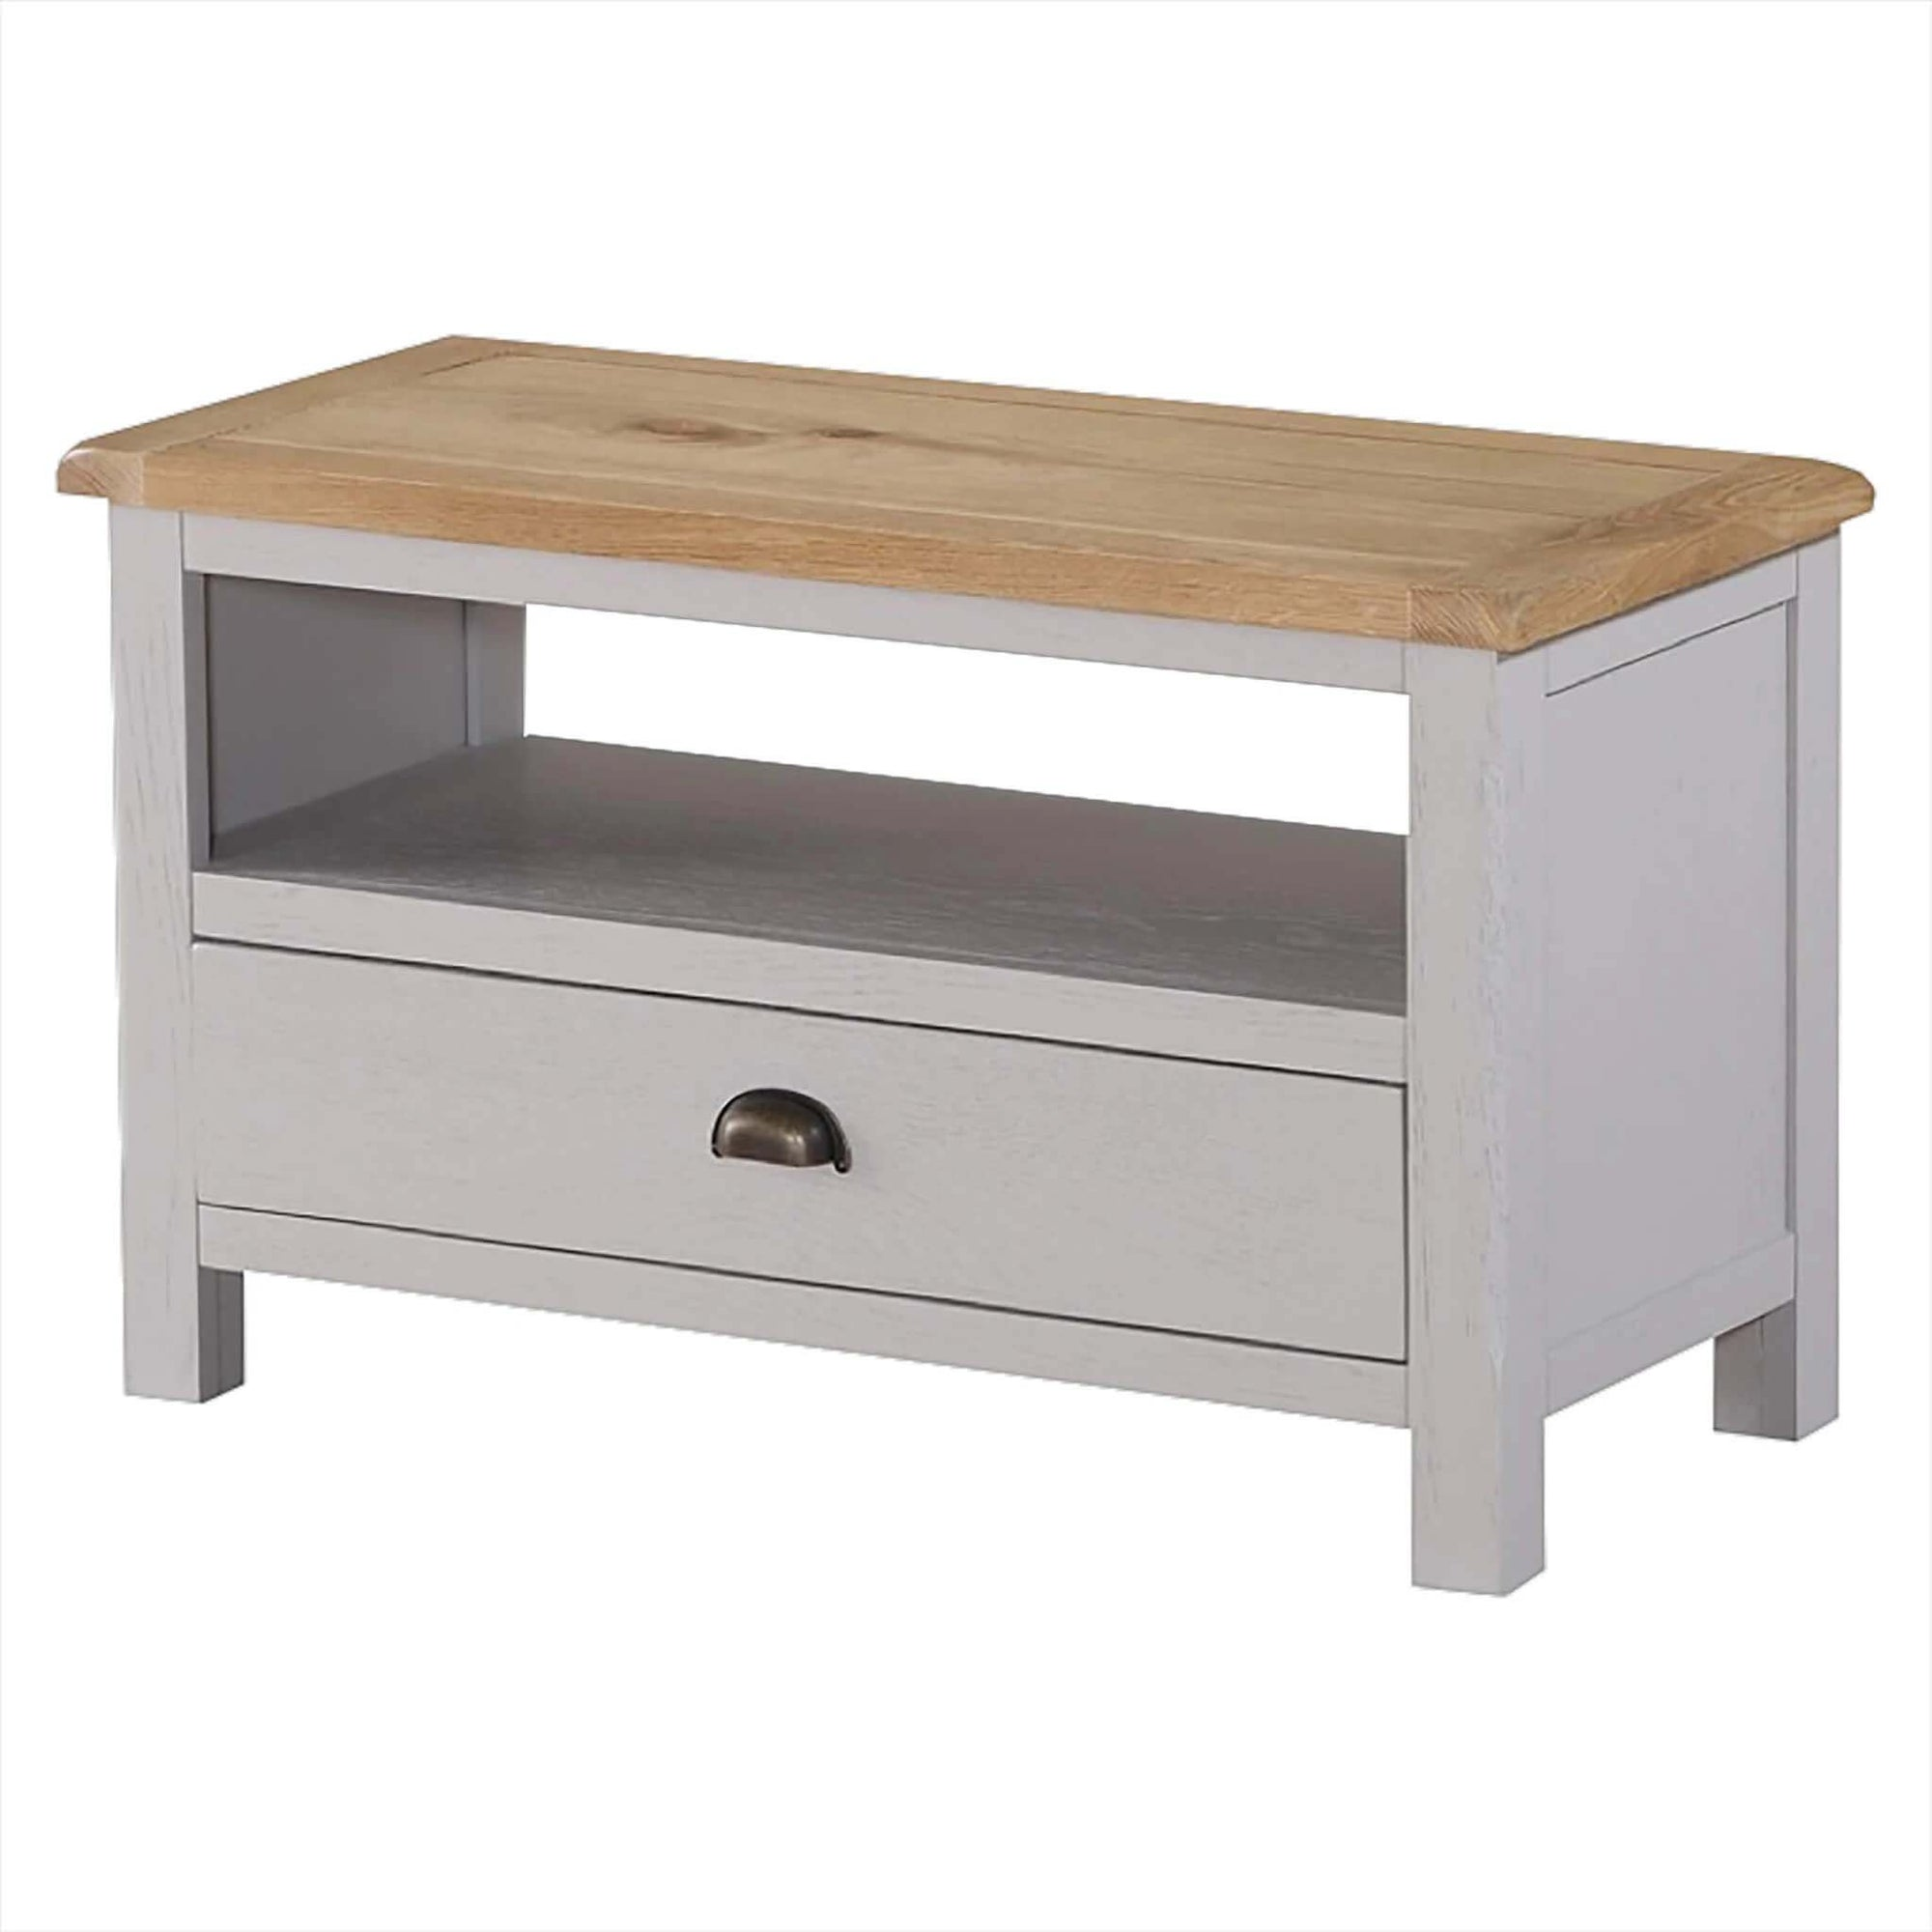 Kilmore Painted 75cm TV Stand by Roseland Furniture